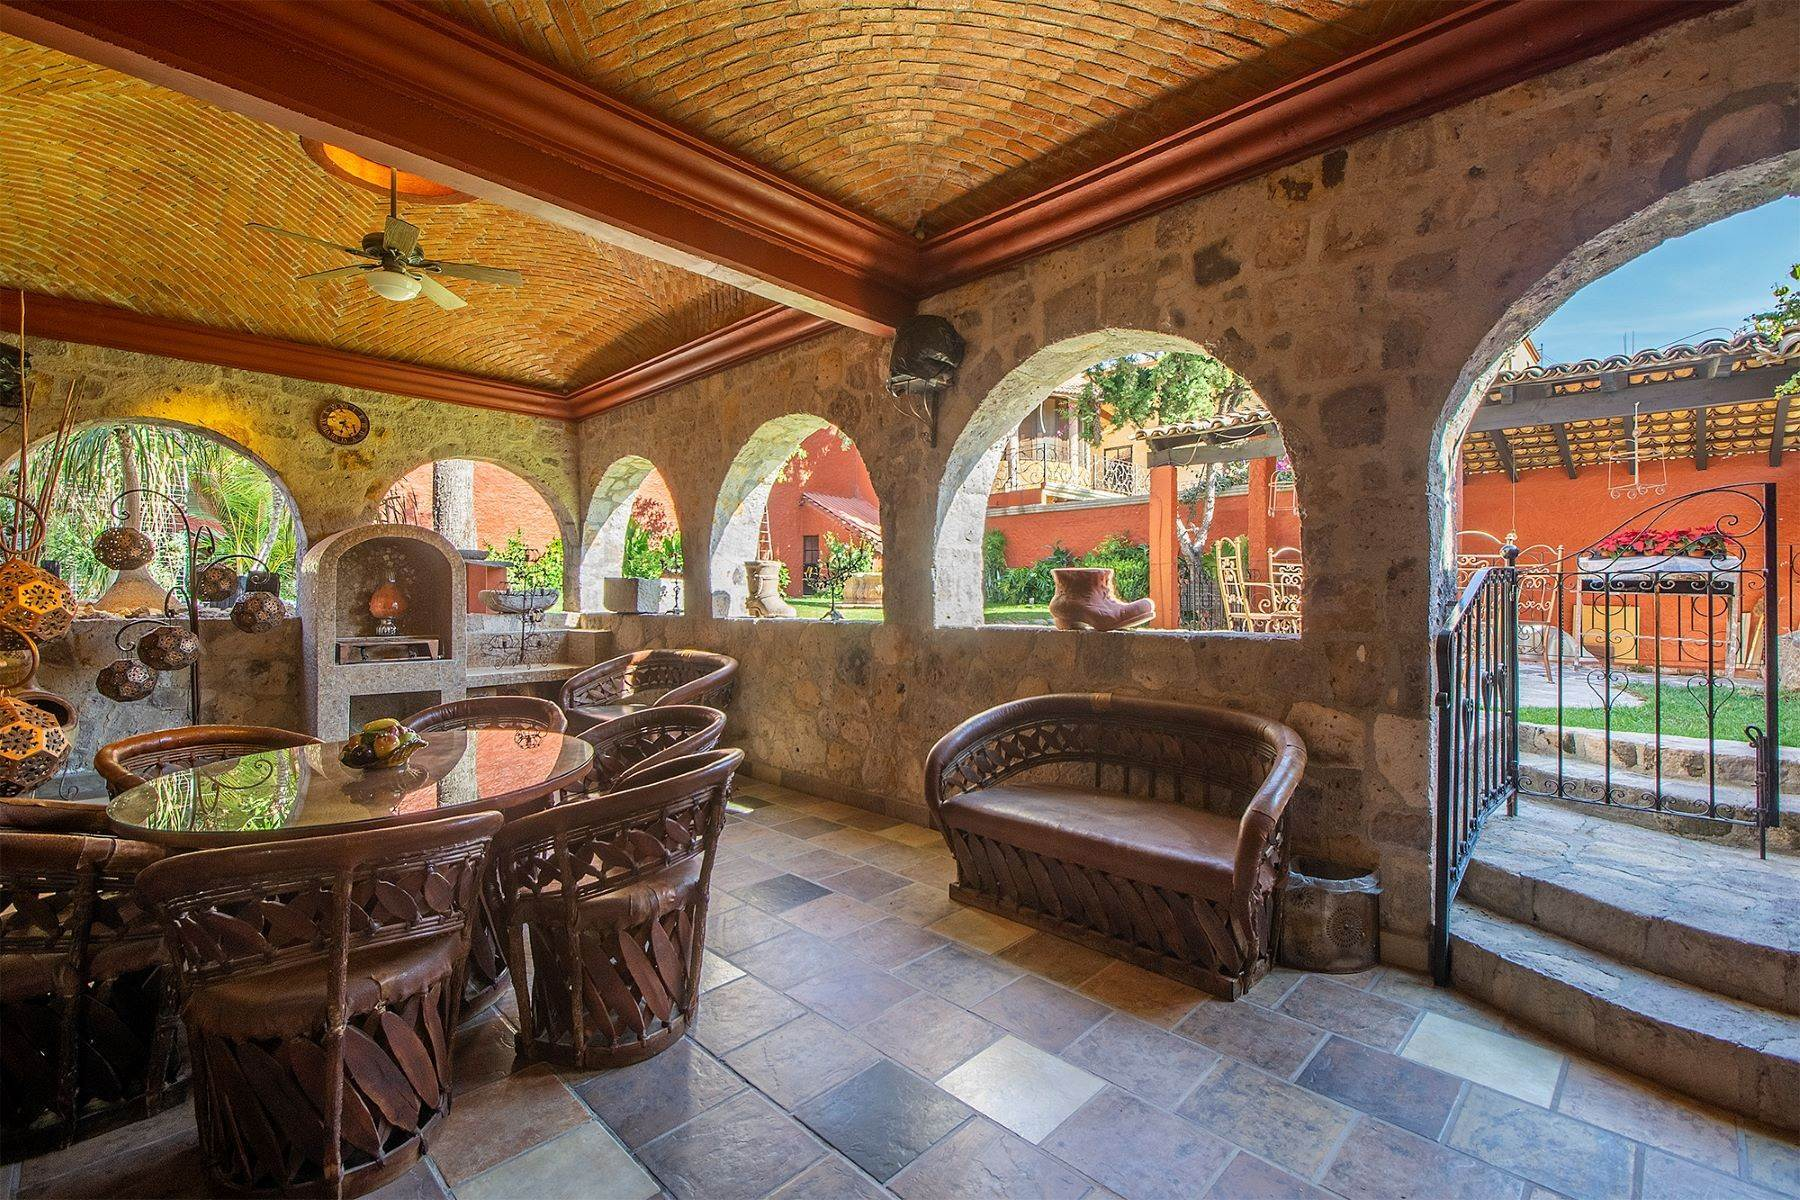 Property for Sale at CASA COLONIAL CASA MEXICANA, Col. Independencia San Miguel De Allende, Guanajuato 37732 Mexico